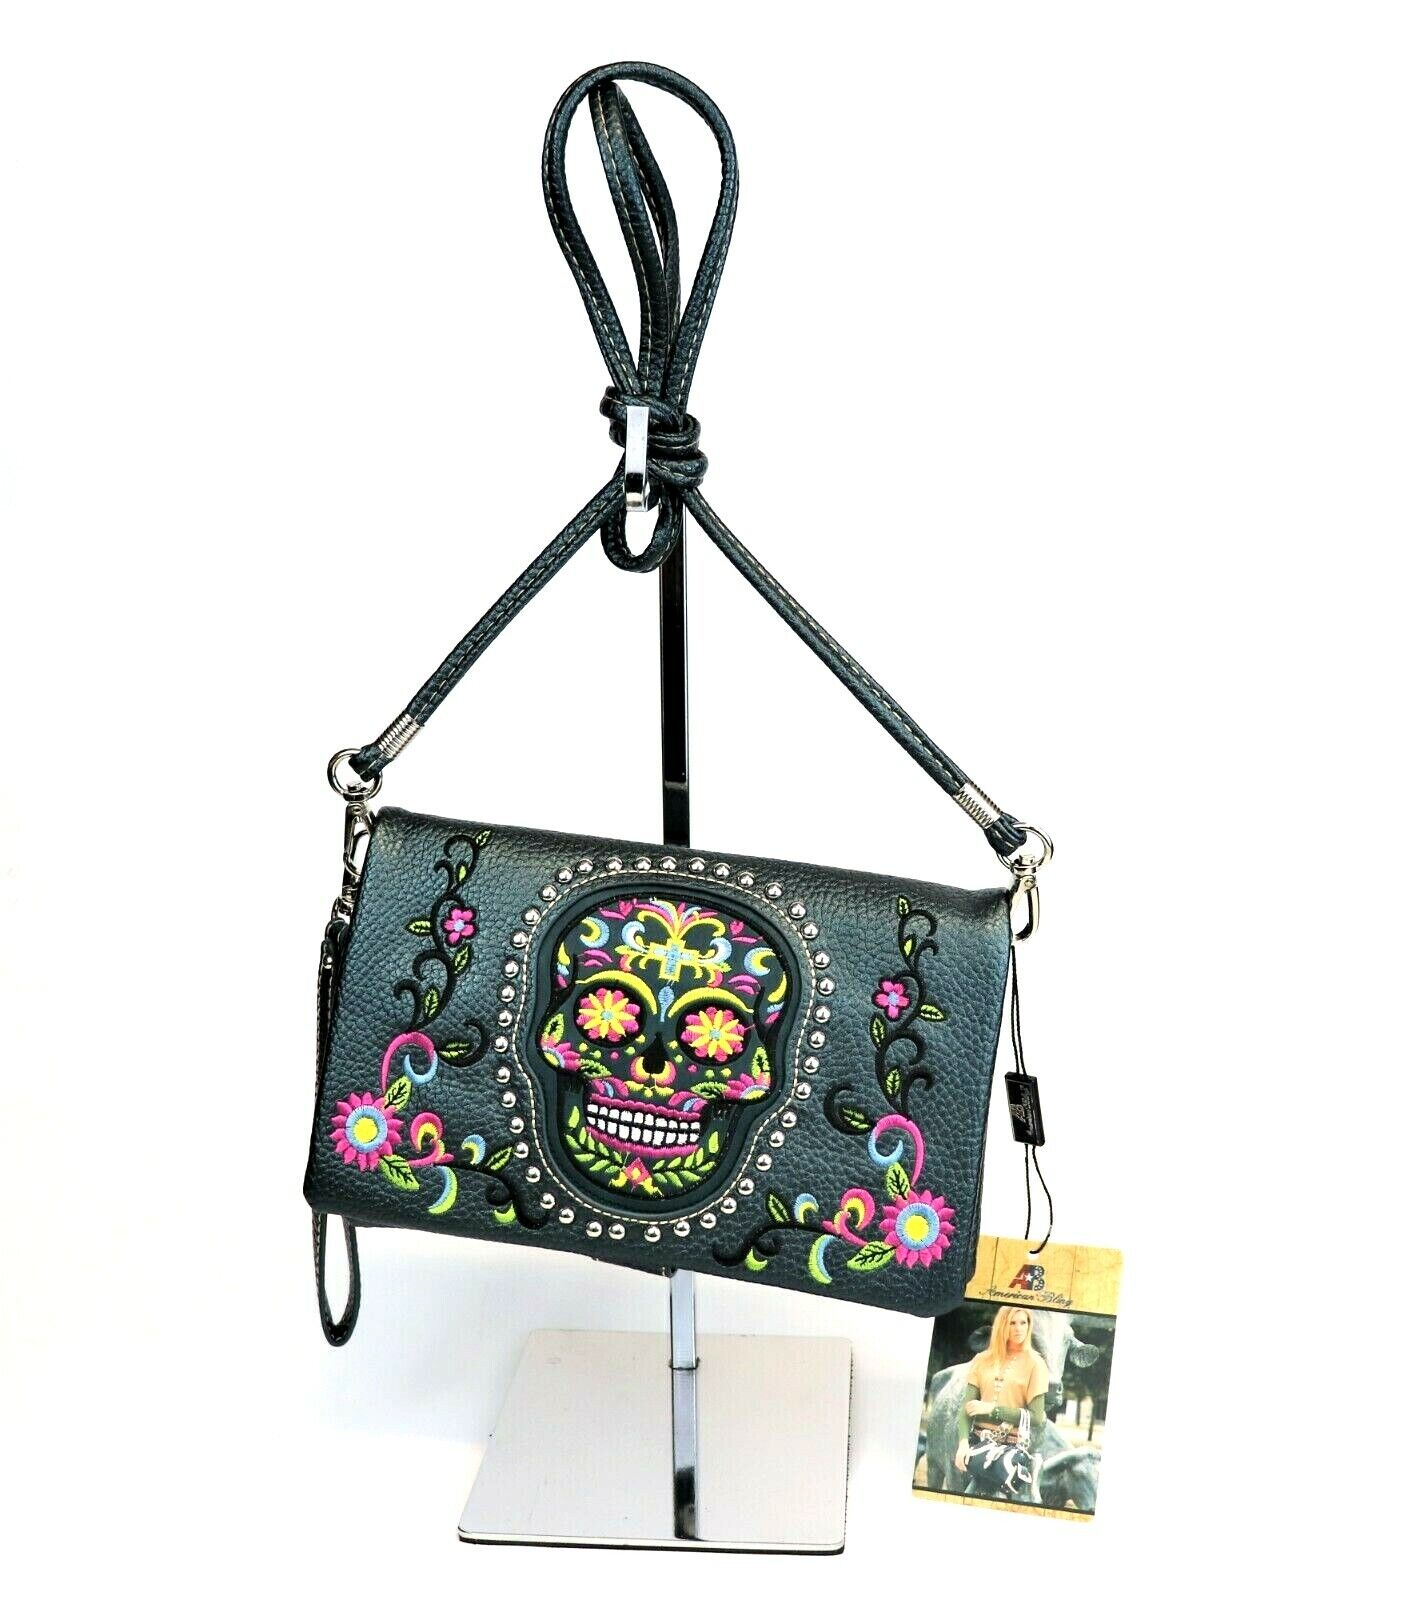 Sugar Skull Purse Country Western Embroidery Crossbody Bag C